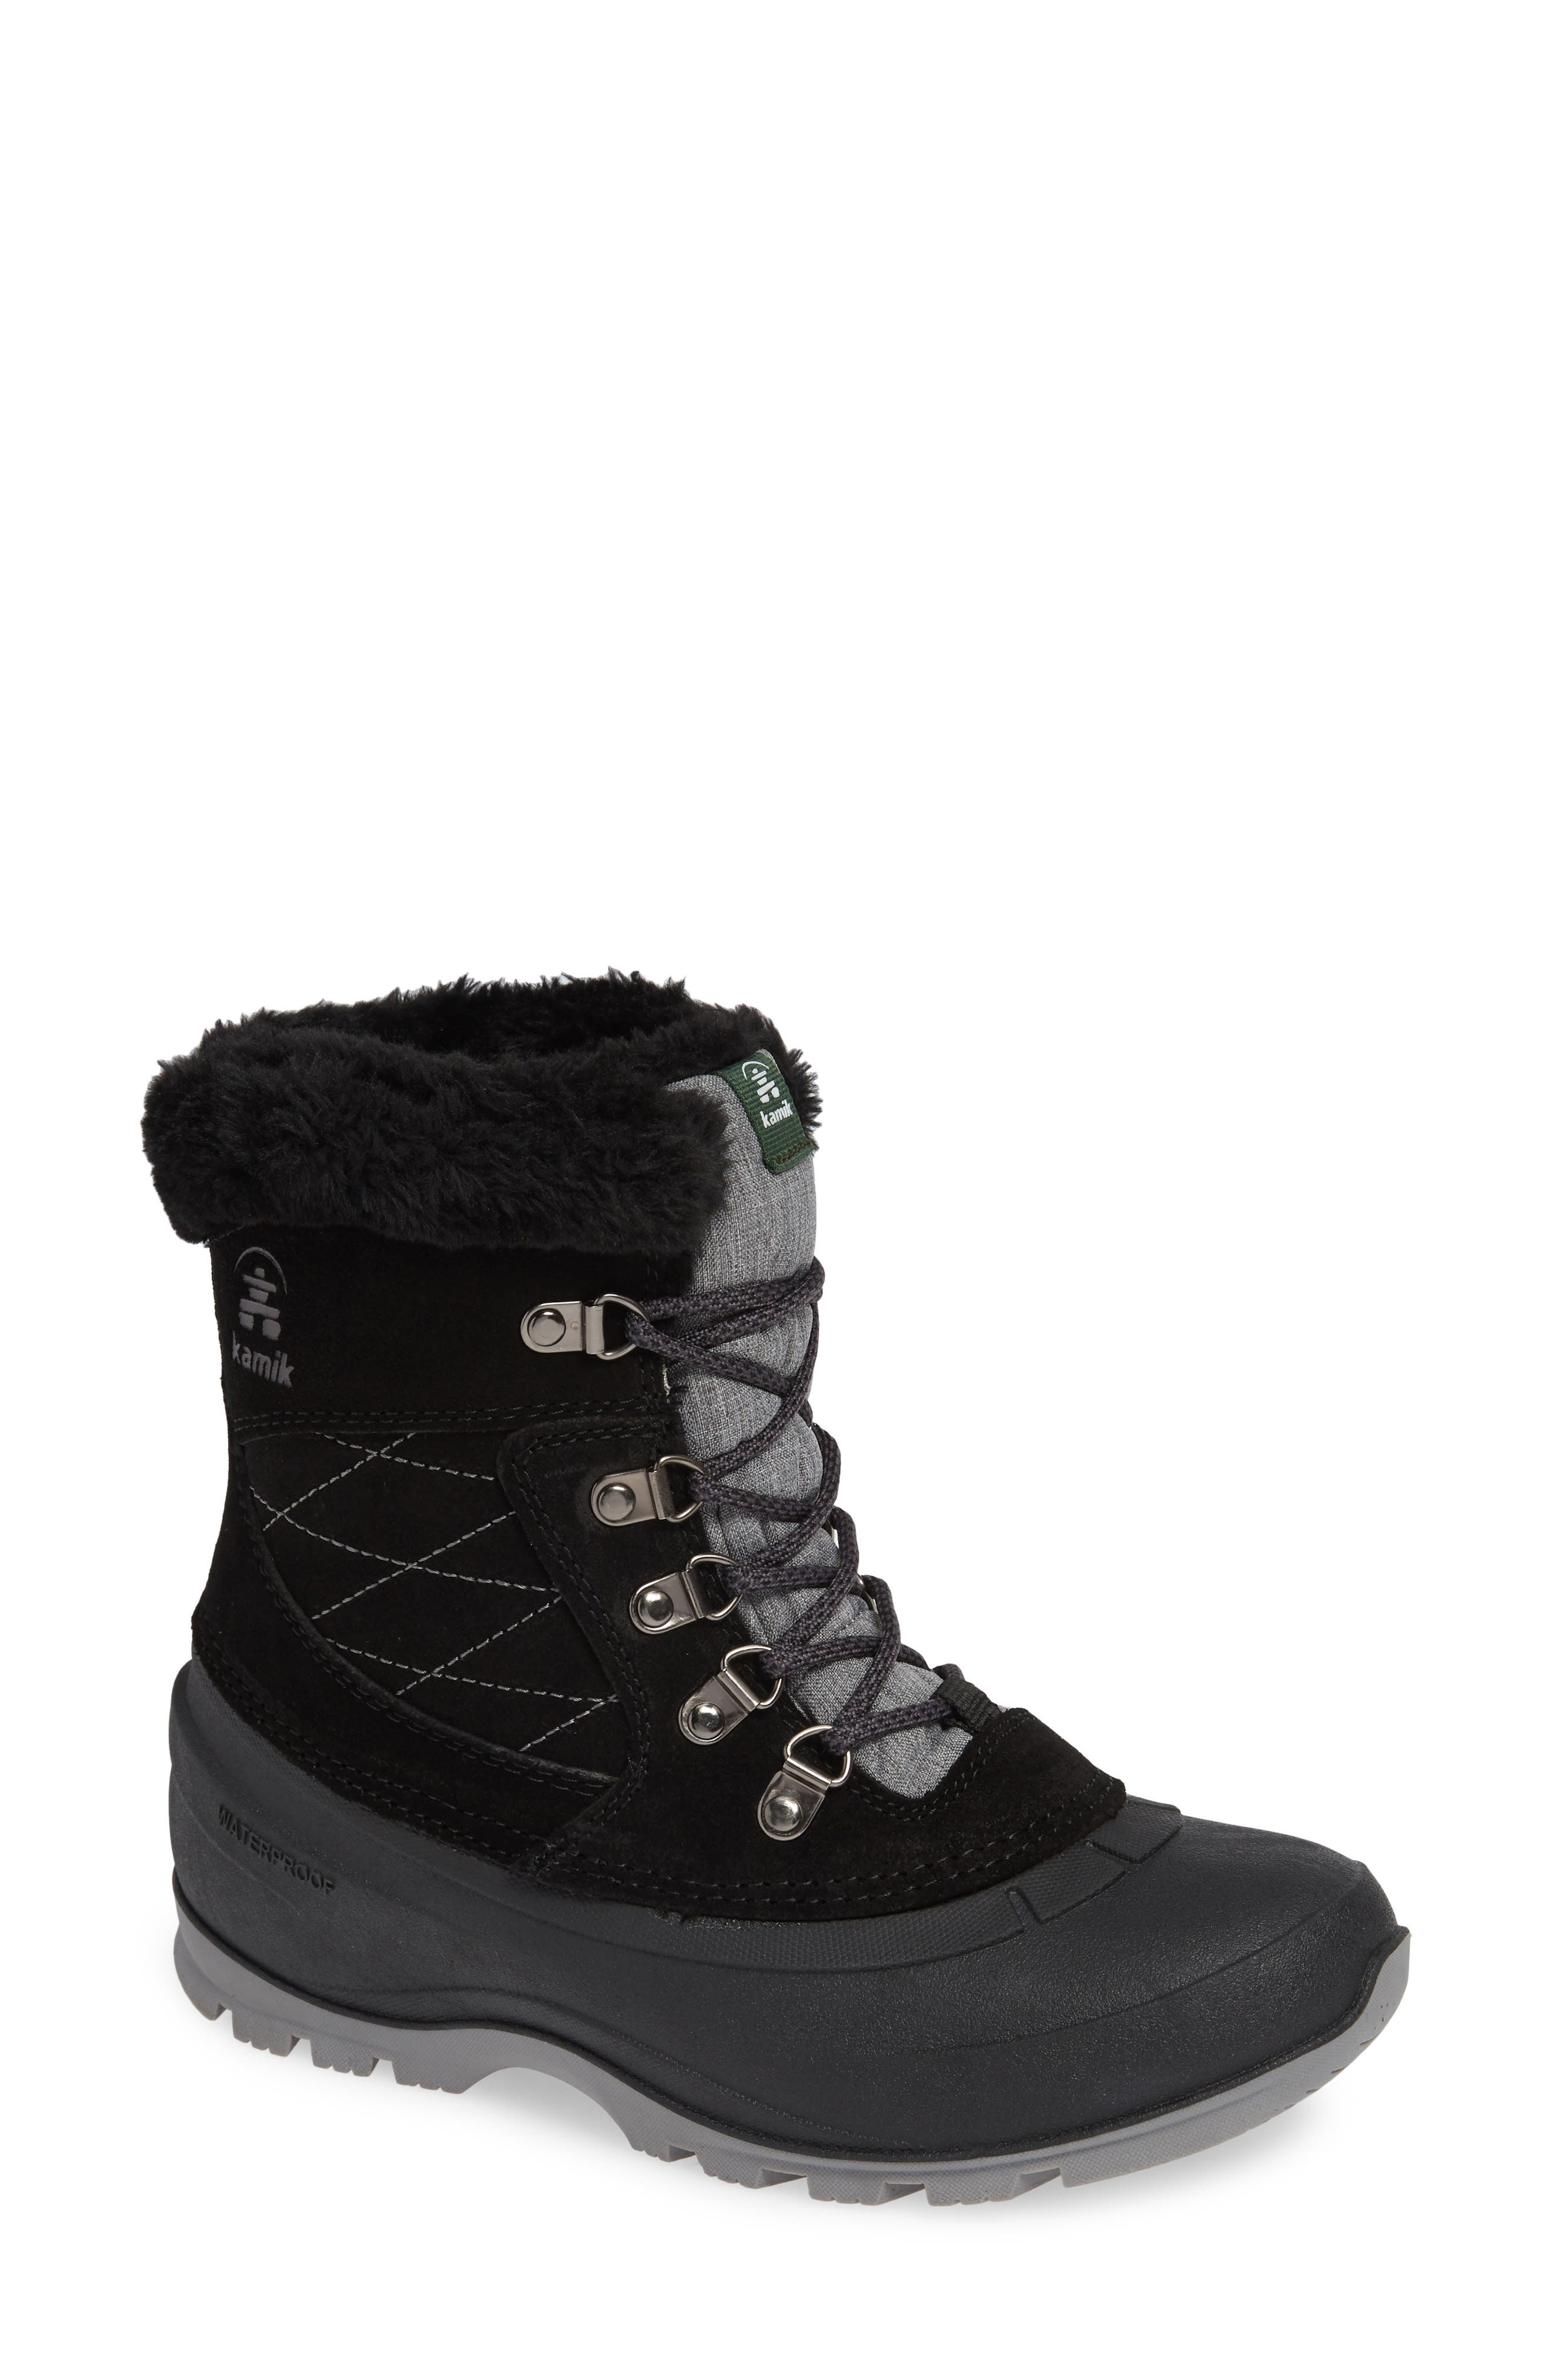 KAMIK, Snovalley1 Waterproof Thinsulate<sup>®</sup> Insulated Snow Boot, Main thumbnail 1, color, 001